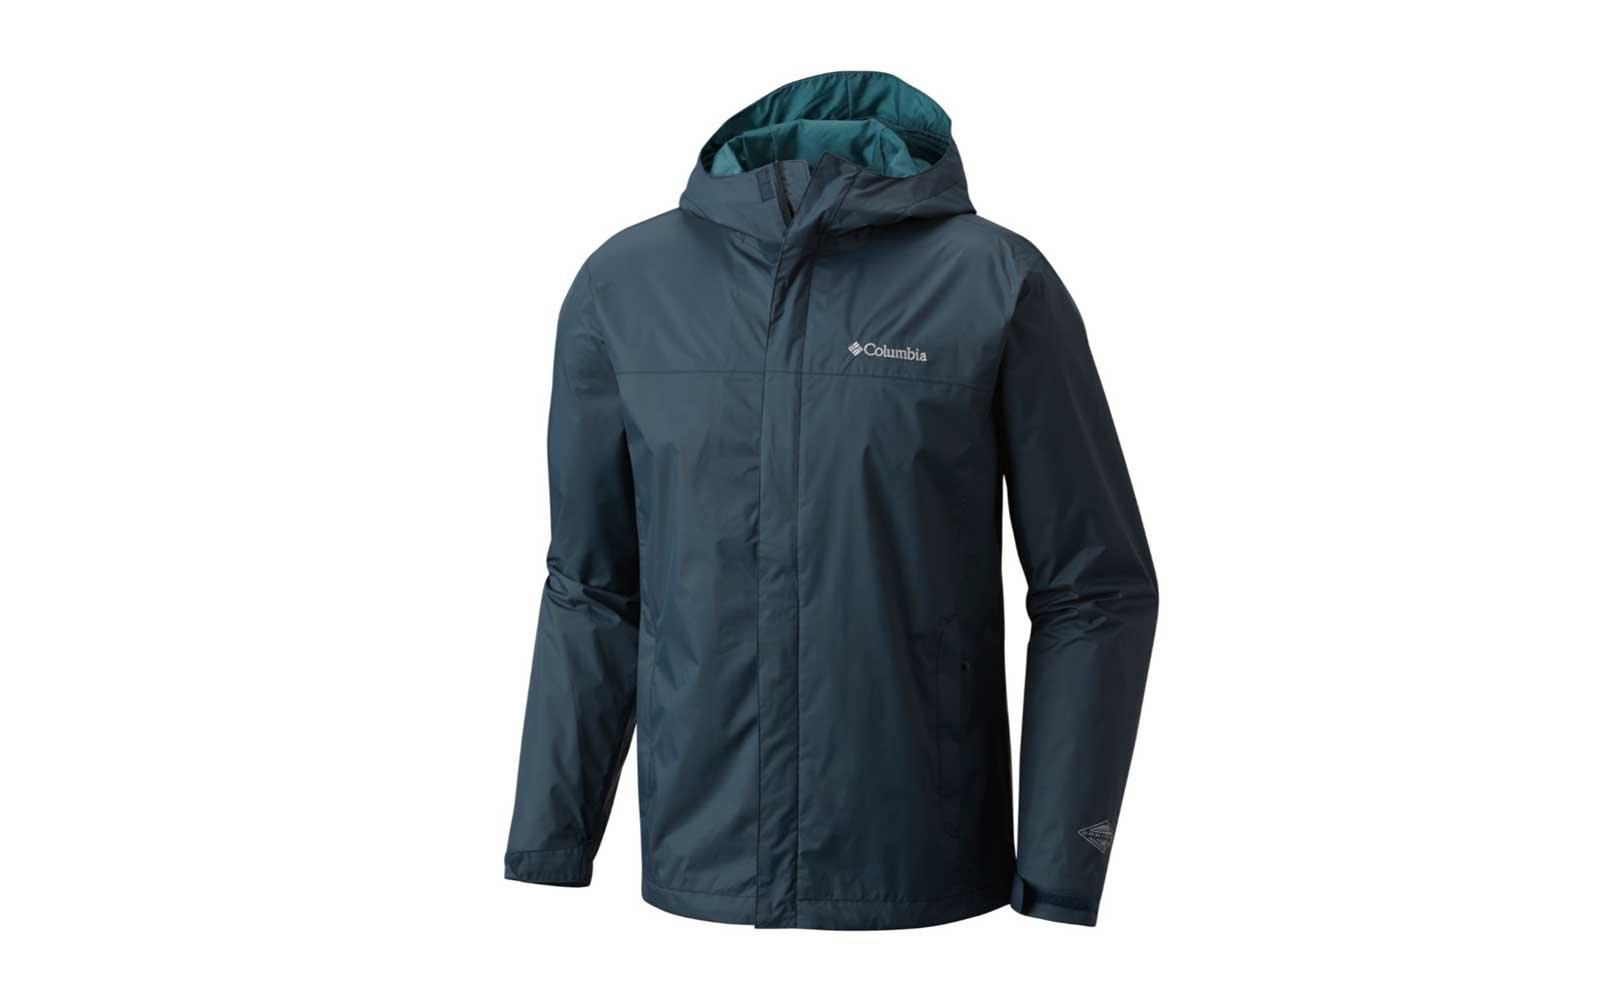 Columbia Packable Rain Jacket